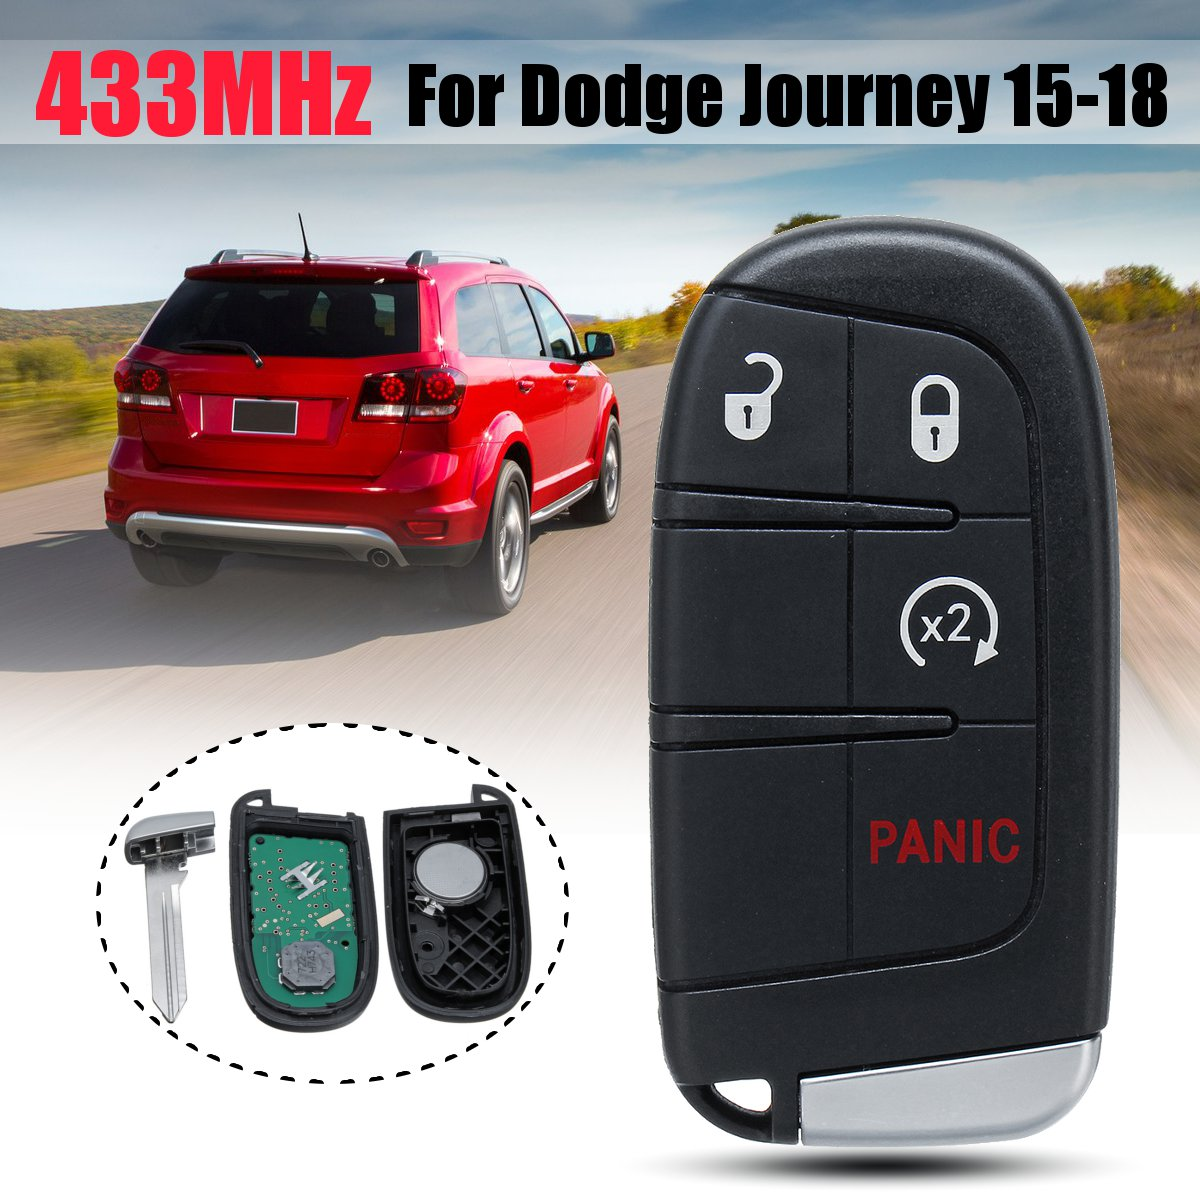 For Dodge Journey 2015 2018 433MHz 4/5 3+1/4+1 Buttons Fob Remote Key with Battery FCC ID: M3N 40821302